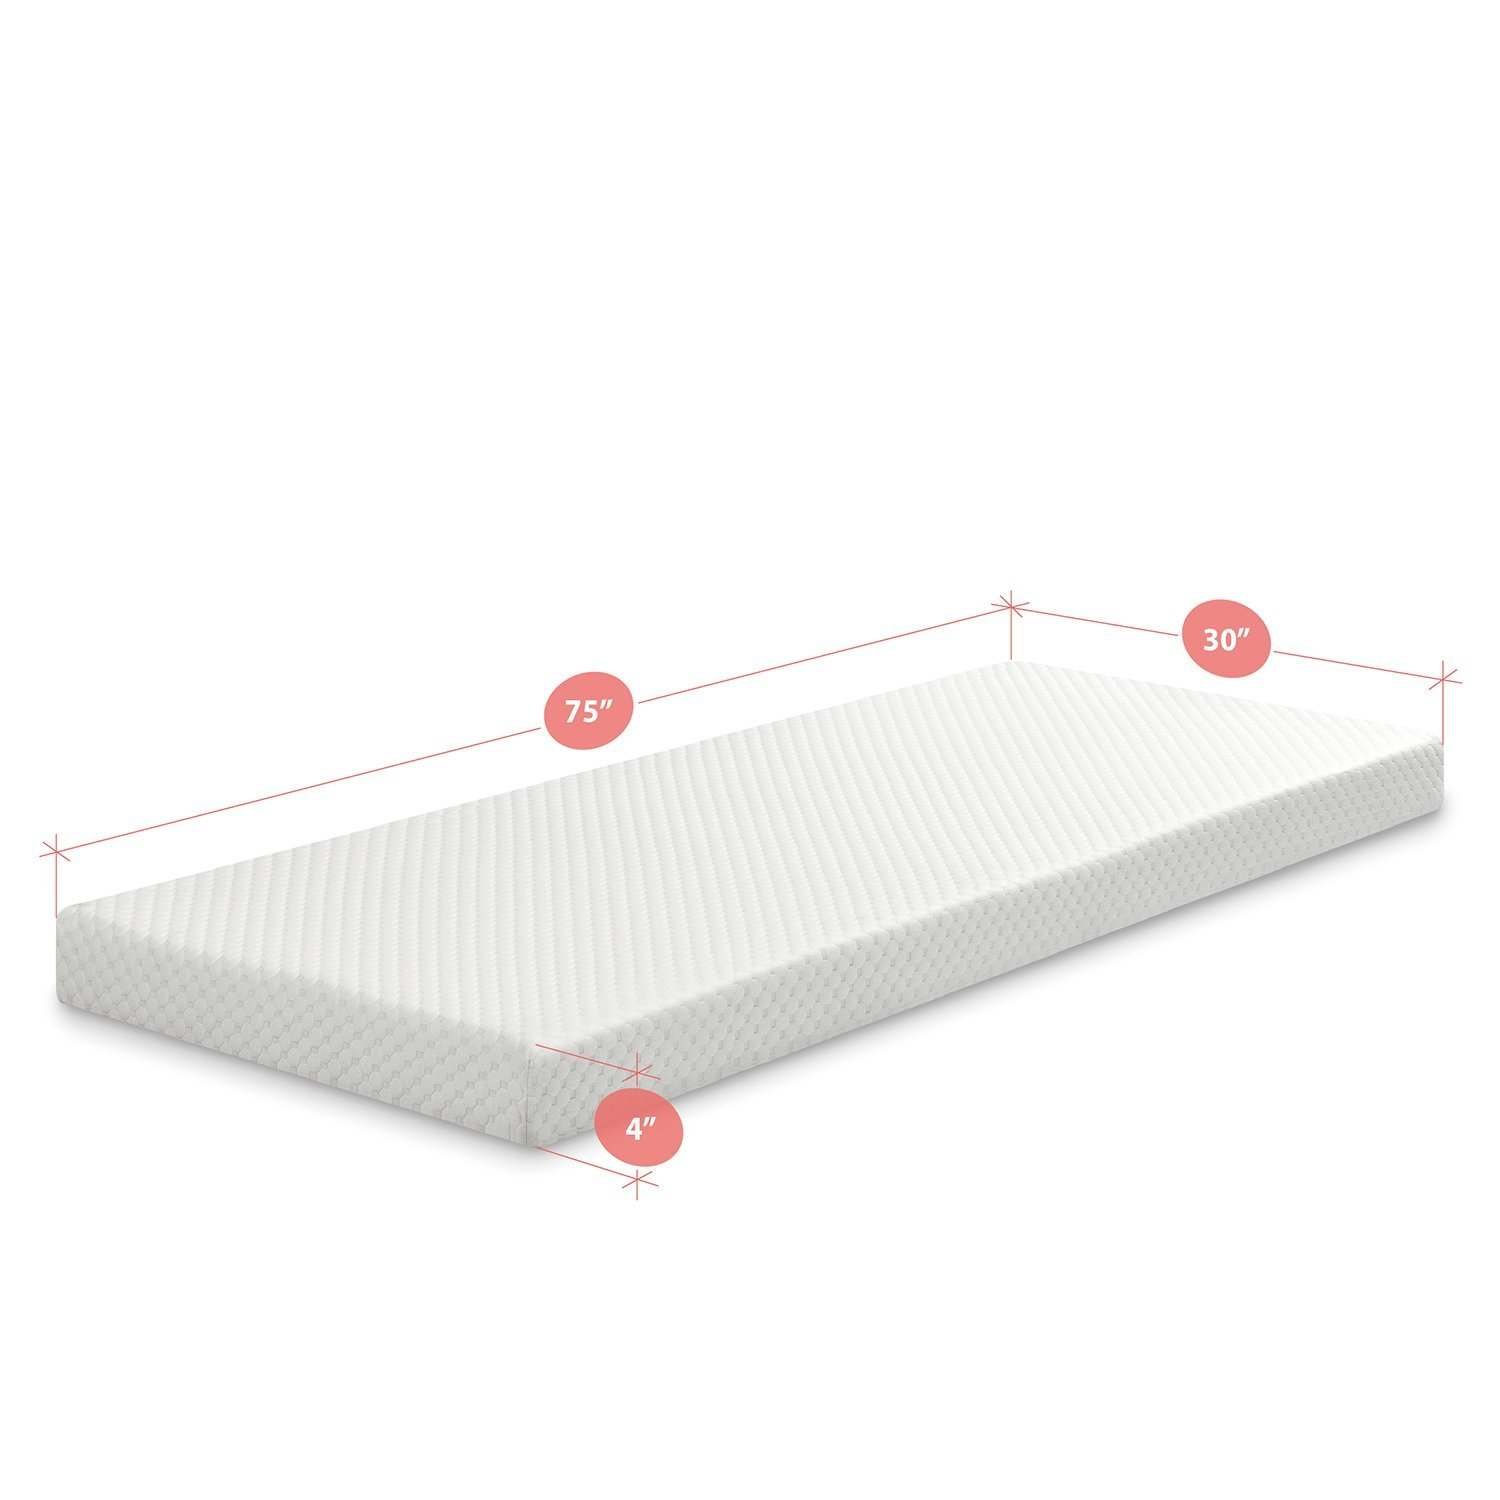 30 x 75 AZ-FMS-4N Zinus Memory Foam 4 Inch Mattress RV Bunk Cot Size Cot Size RV Bunk 30 x 75 Narrow Twin Narrow Twin Guest Bed Replacement Guest Bed Replacement